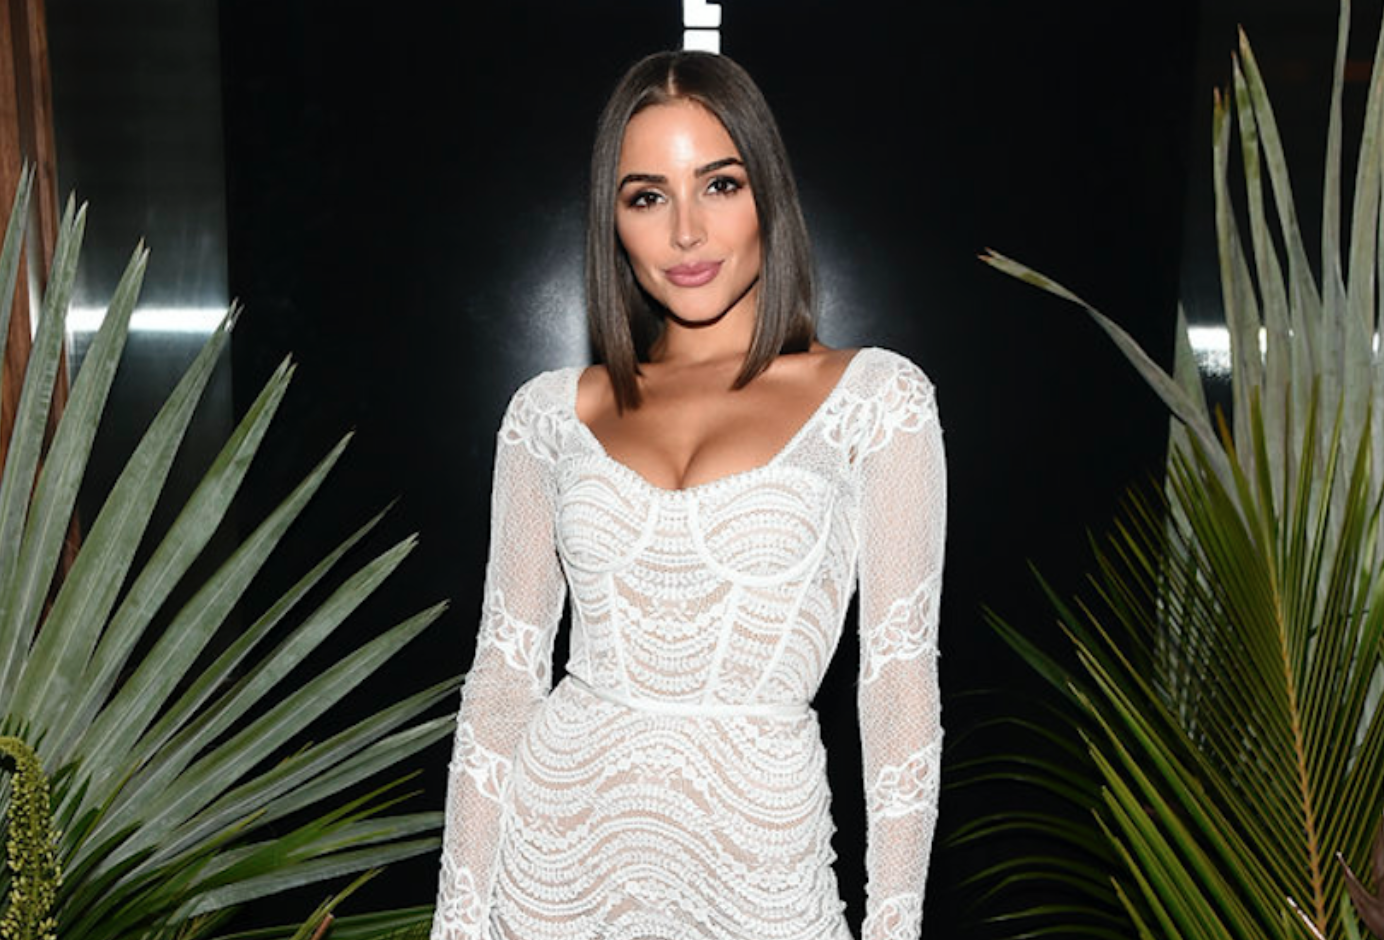 ICloud Olivia Culpo nude (68 foto and video), Ass, Leaked, Boobs, legs 2019